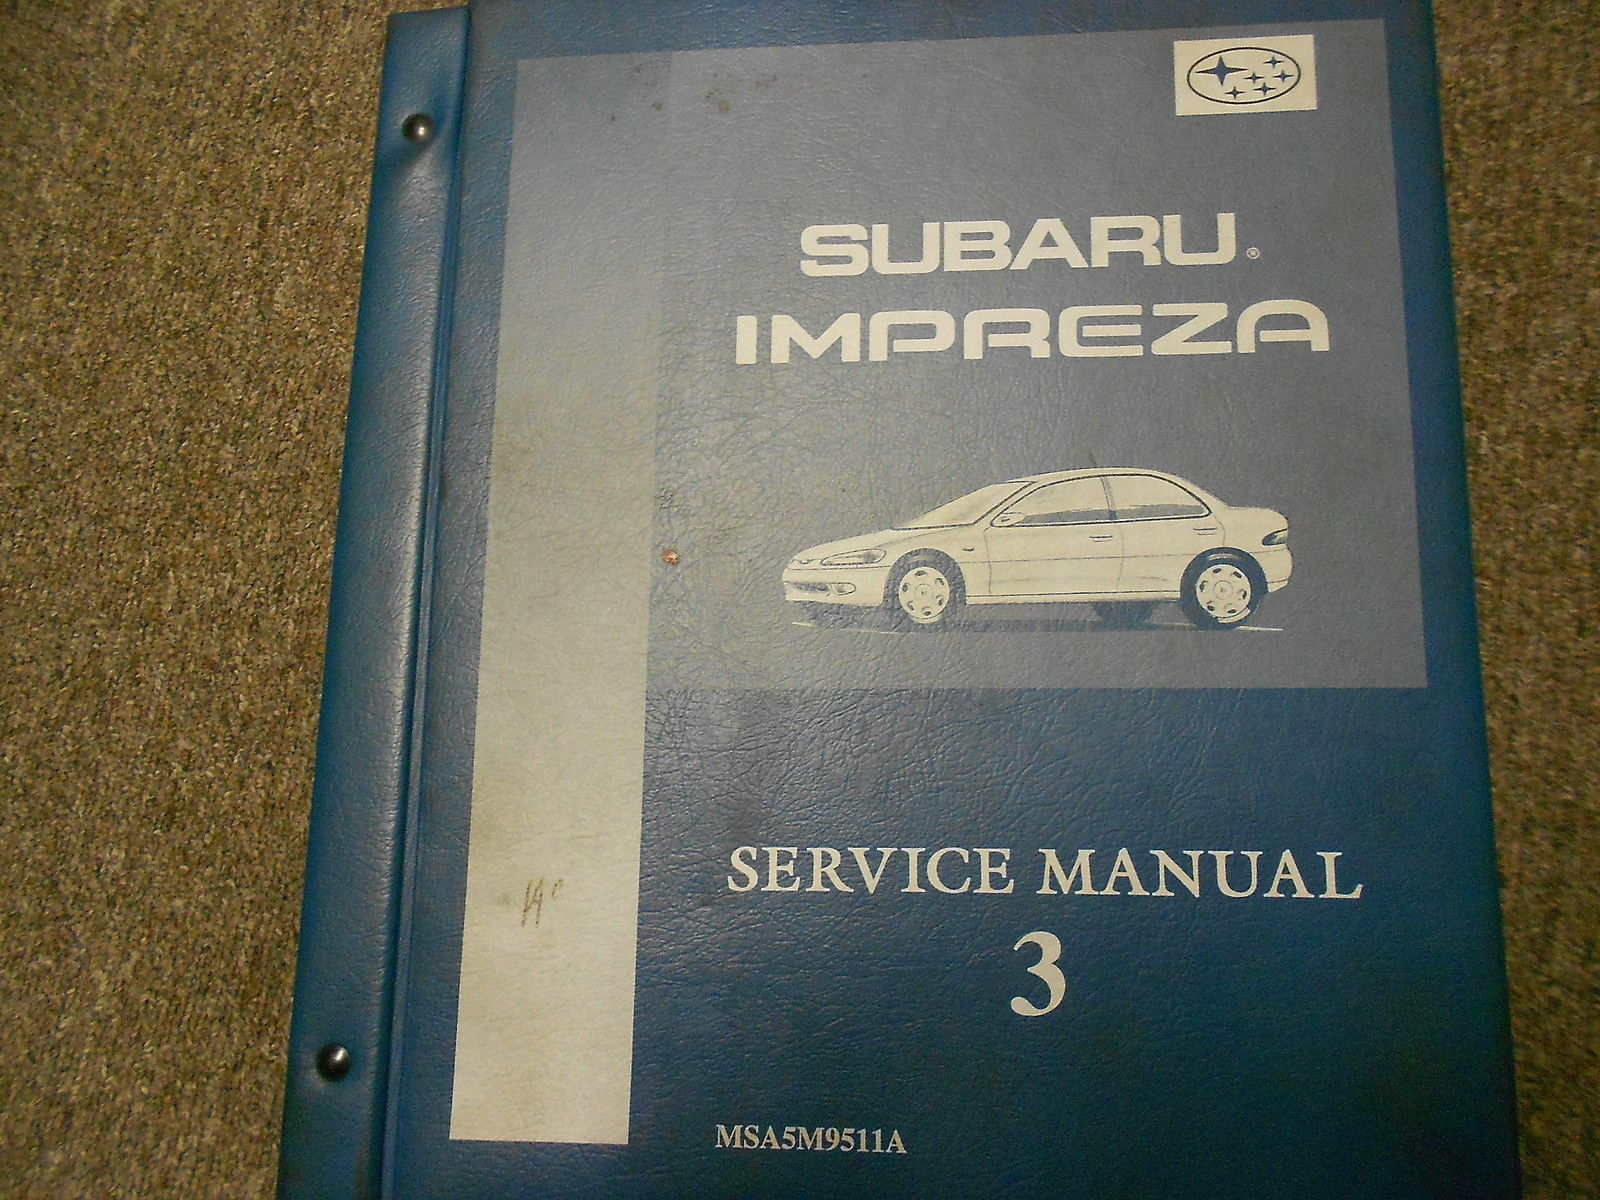 1995 Subaru Impreza Gen Info Service Repair Shop Manual #2 # 2 BINDER  FACTORY 95